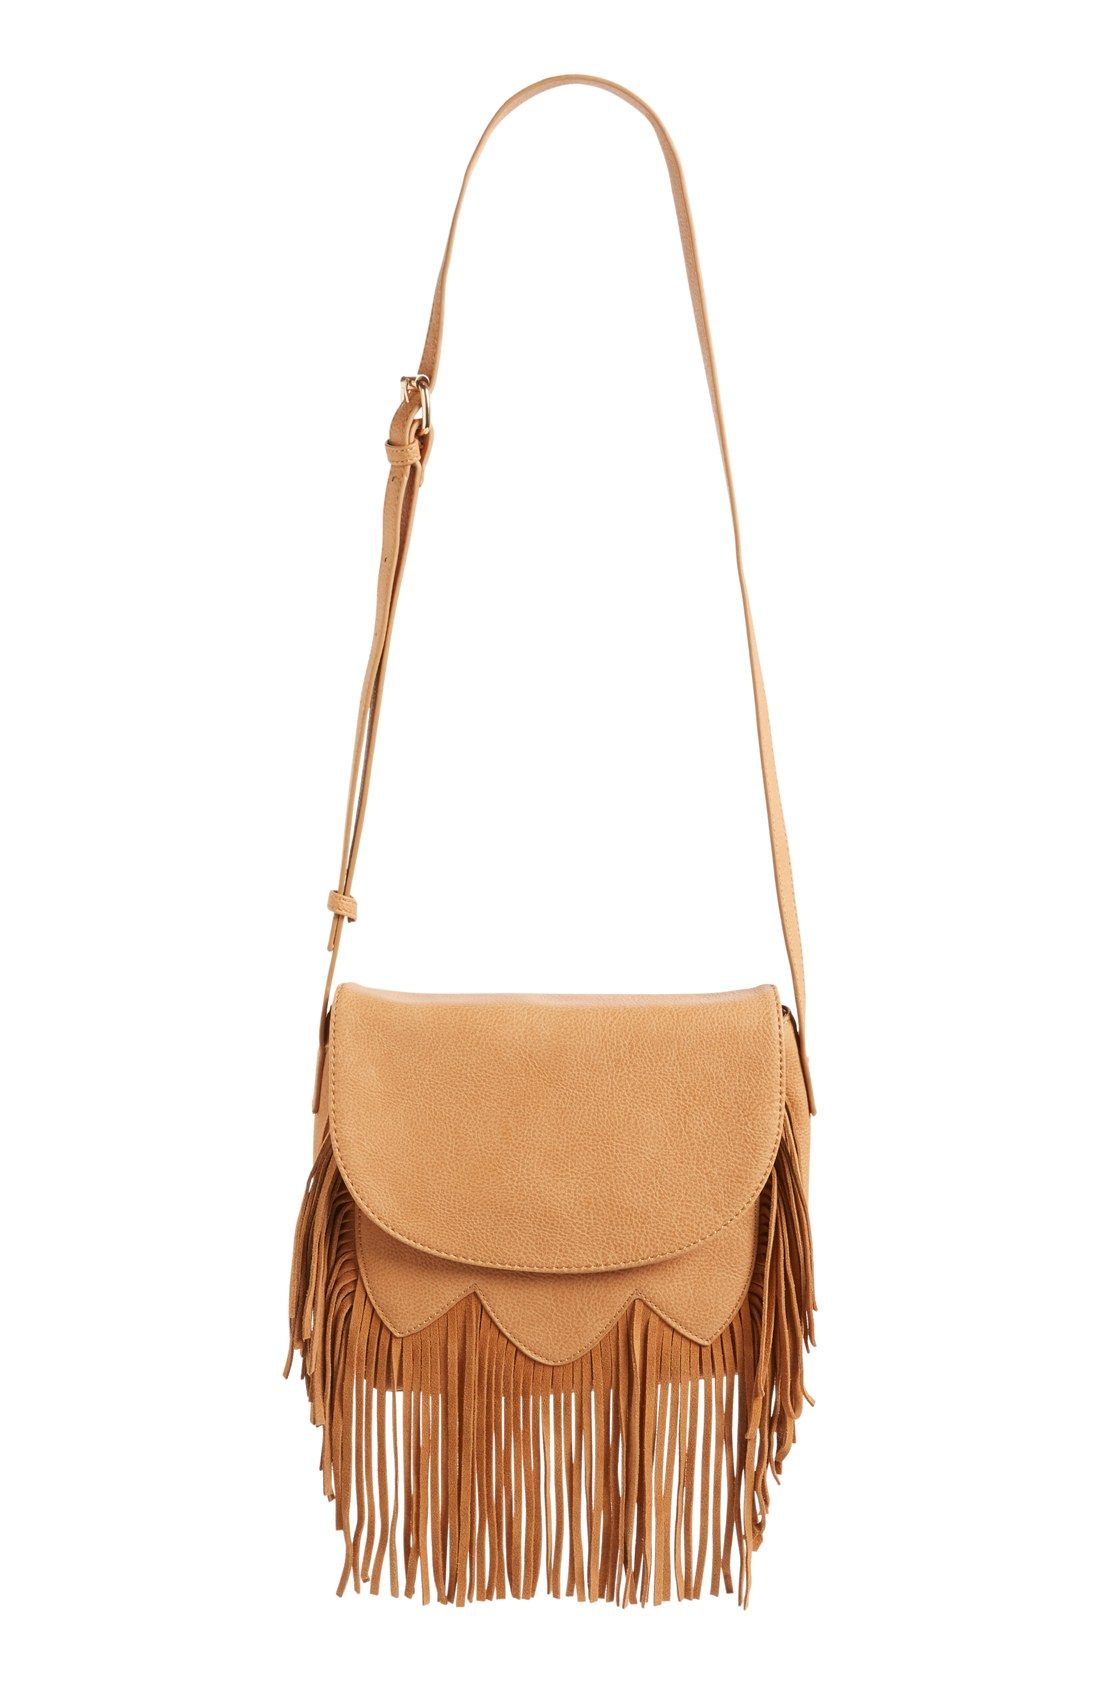 6c1b355df Sole Society 'Kerry' Fringe Crossbody Bag | Winterbeauty❄ | Fashion ...